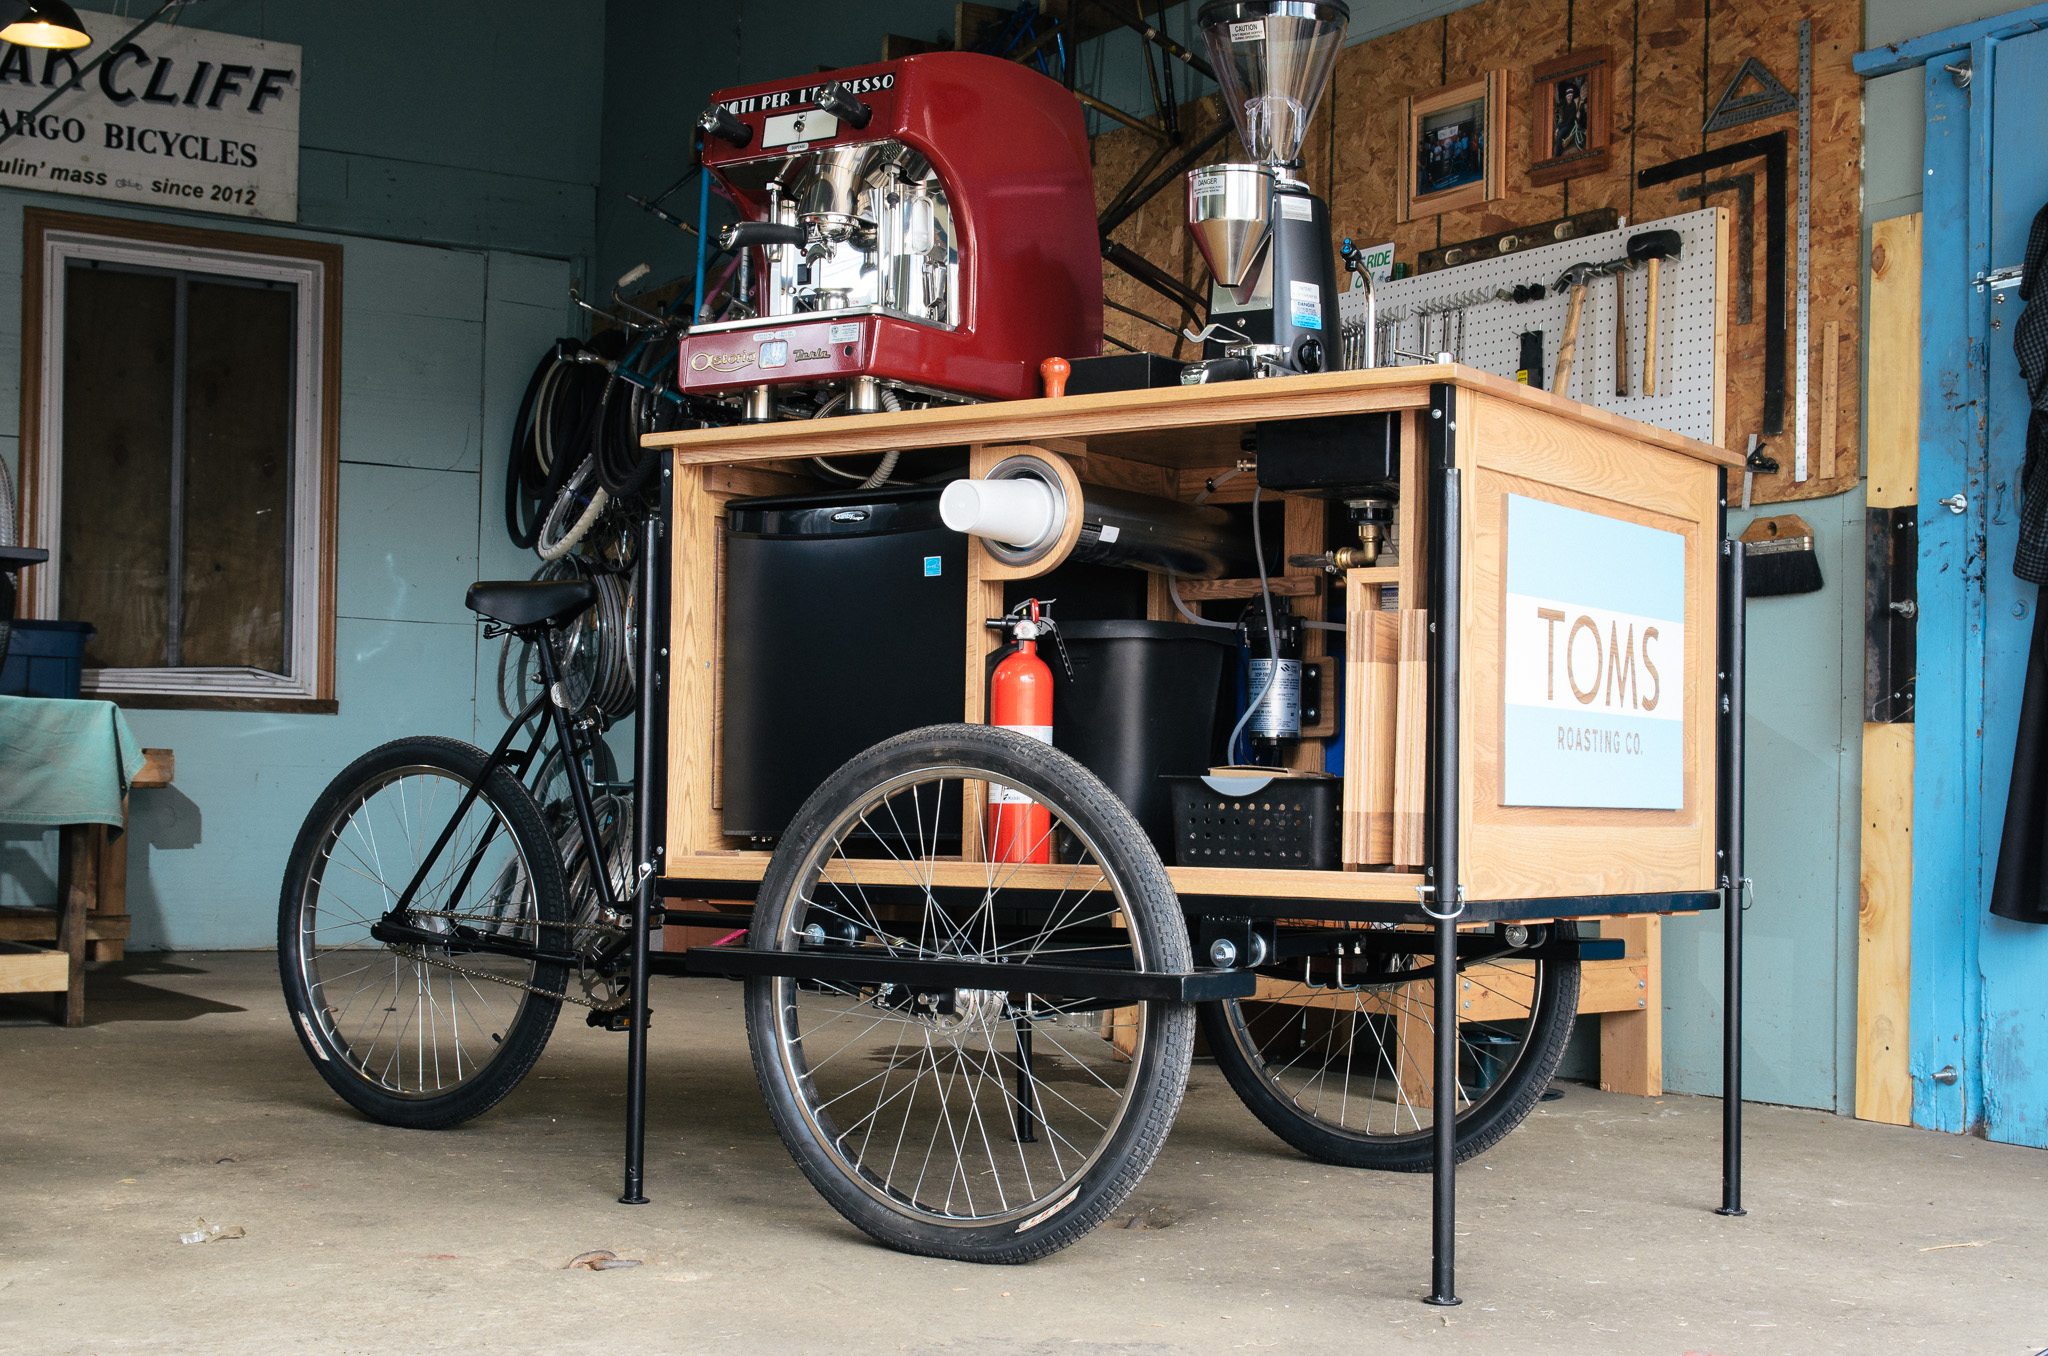 Business Oak Cliff Cargo Bicycles